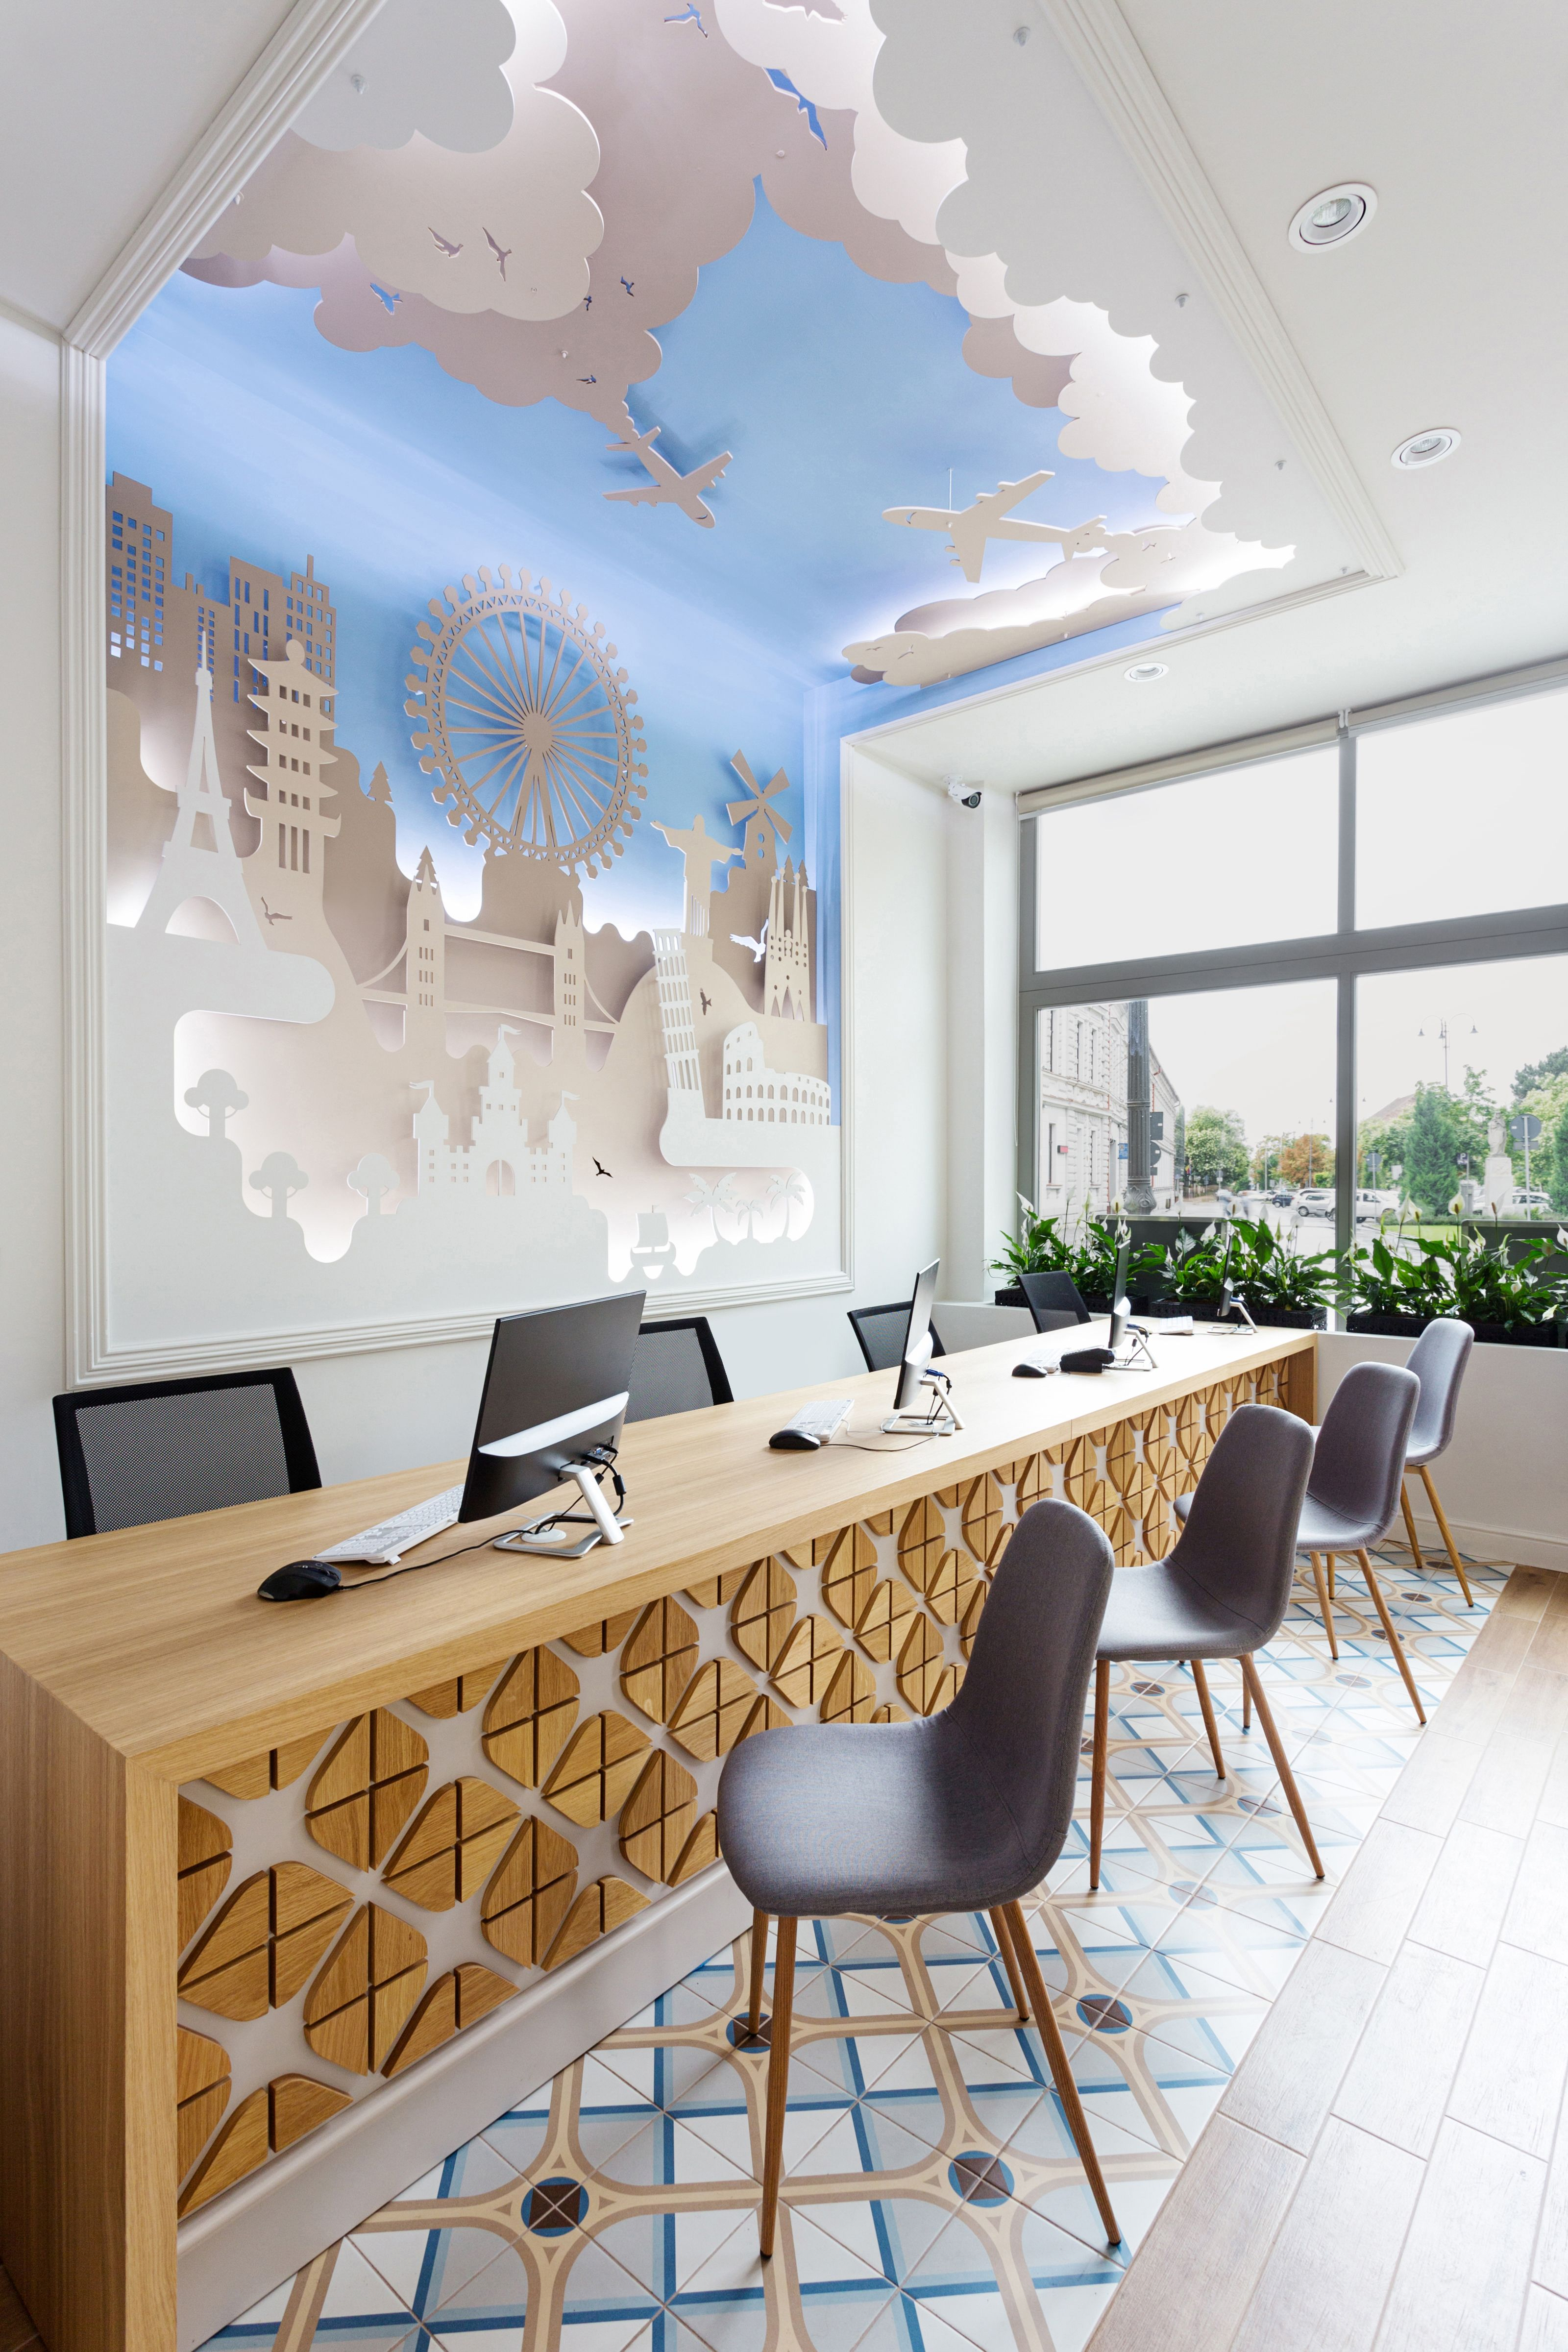 Transilvania Travel Services Agency Project Made By Tuzson Design With Montaner Floor Tiles Vives Cerami Office Interior Design Office Interiors Interior